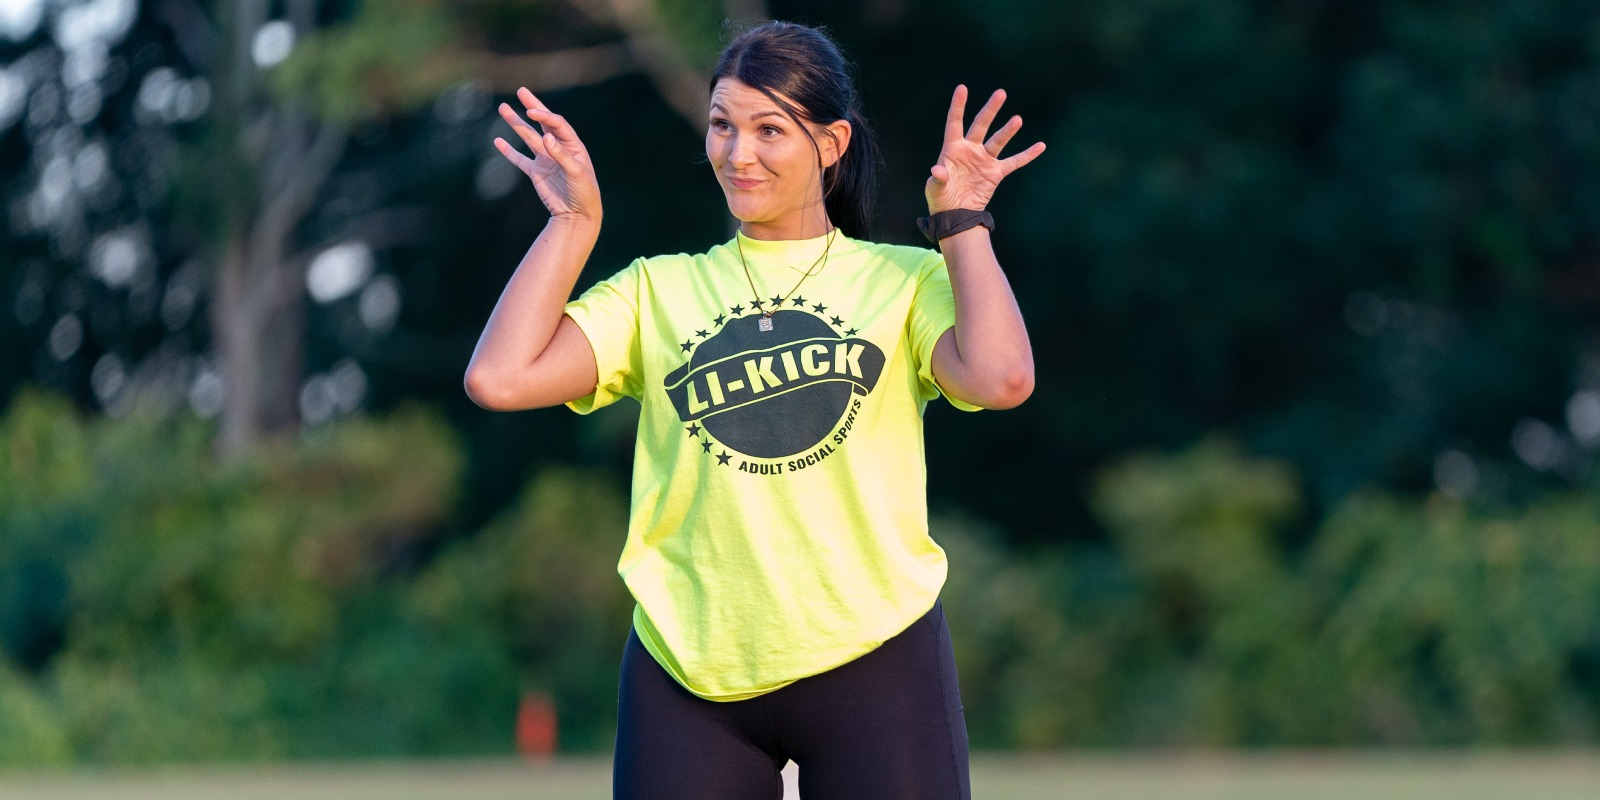 Spring Kickball East Islip                     Thursday